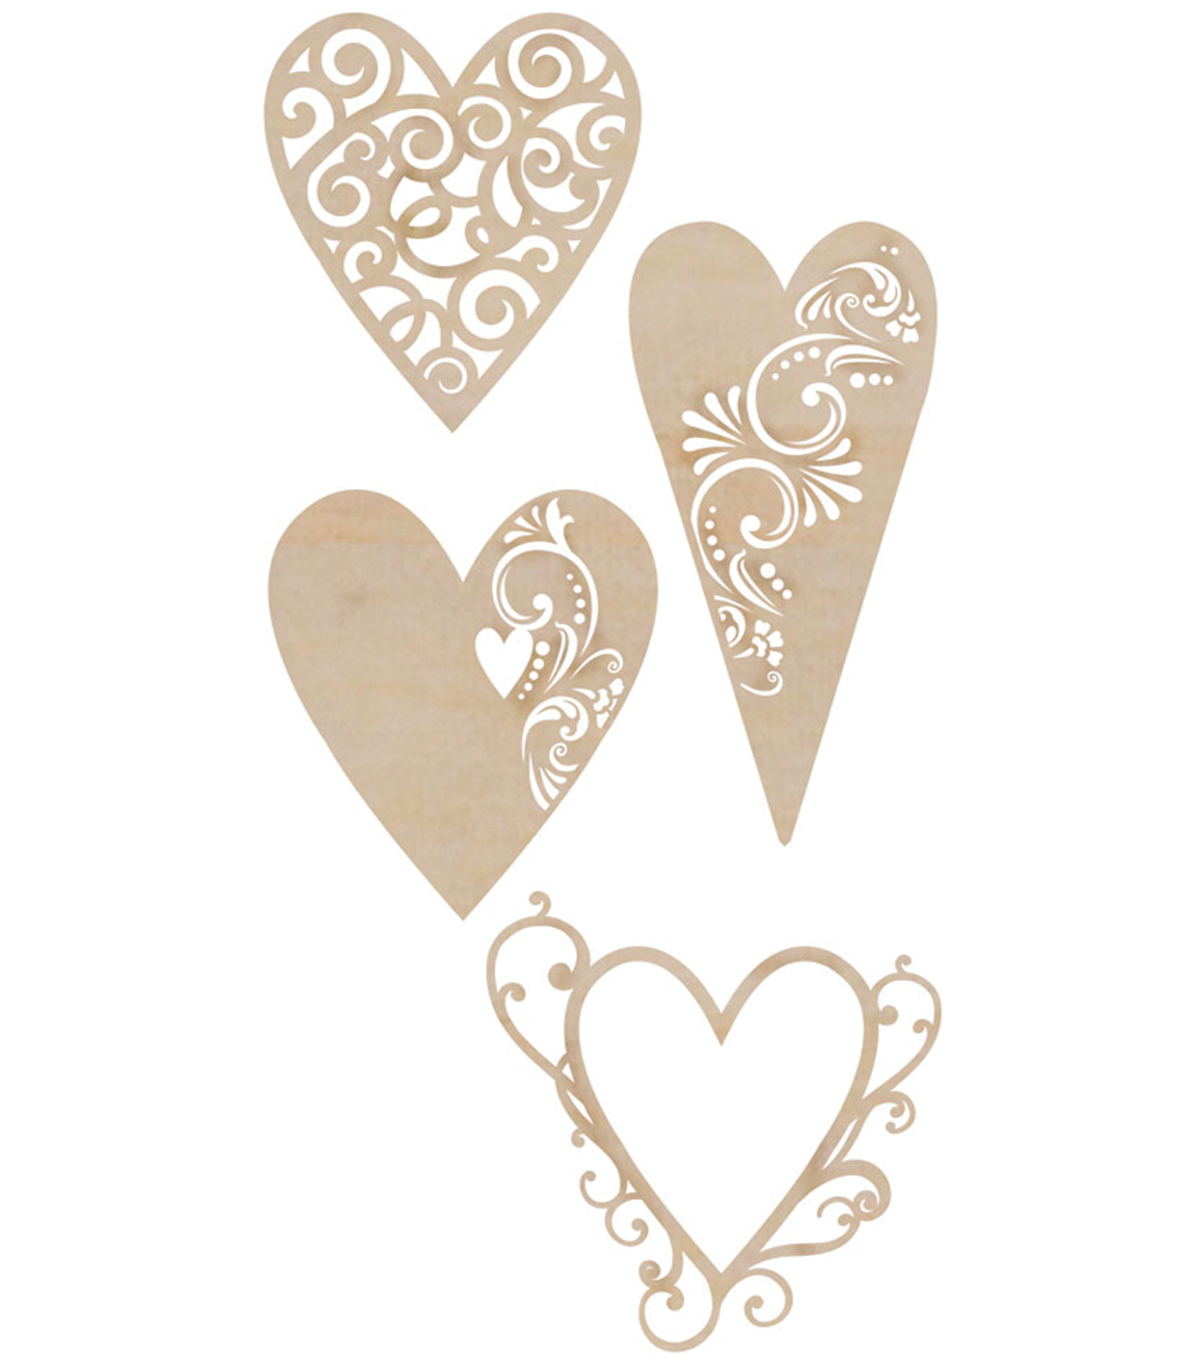 Kaisercraft Wood Flourishes 4Pk-Fancy Hearts